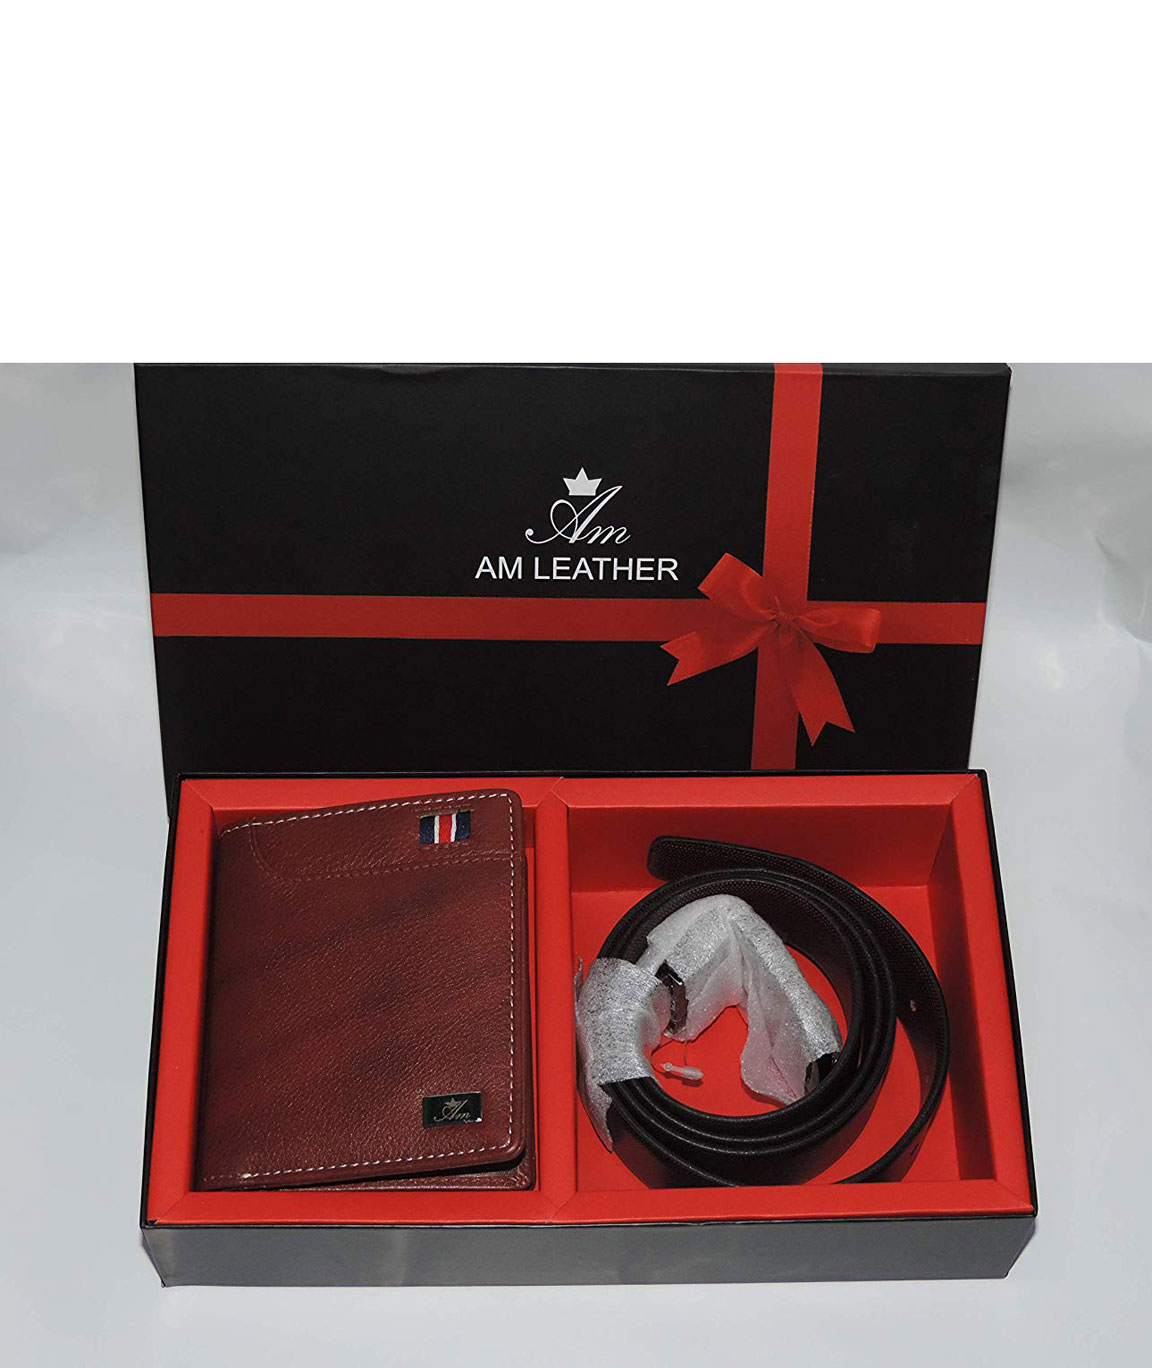 AM LEATHER Handmade 100% Genuine Leather Corporate Gift